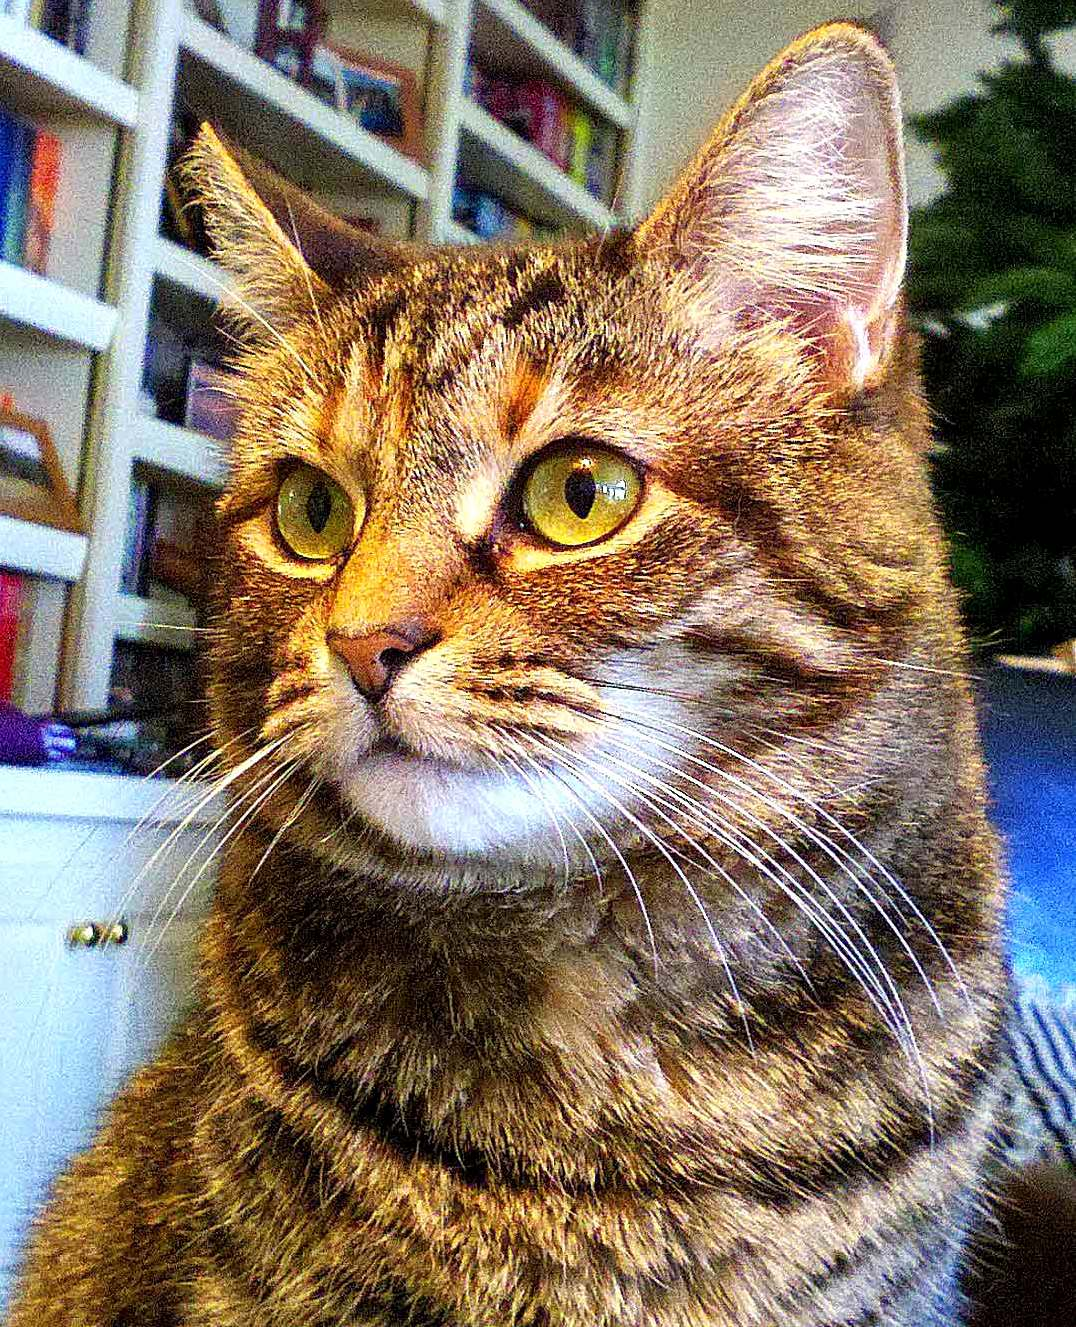 Our very bossy cat molly ivins